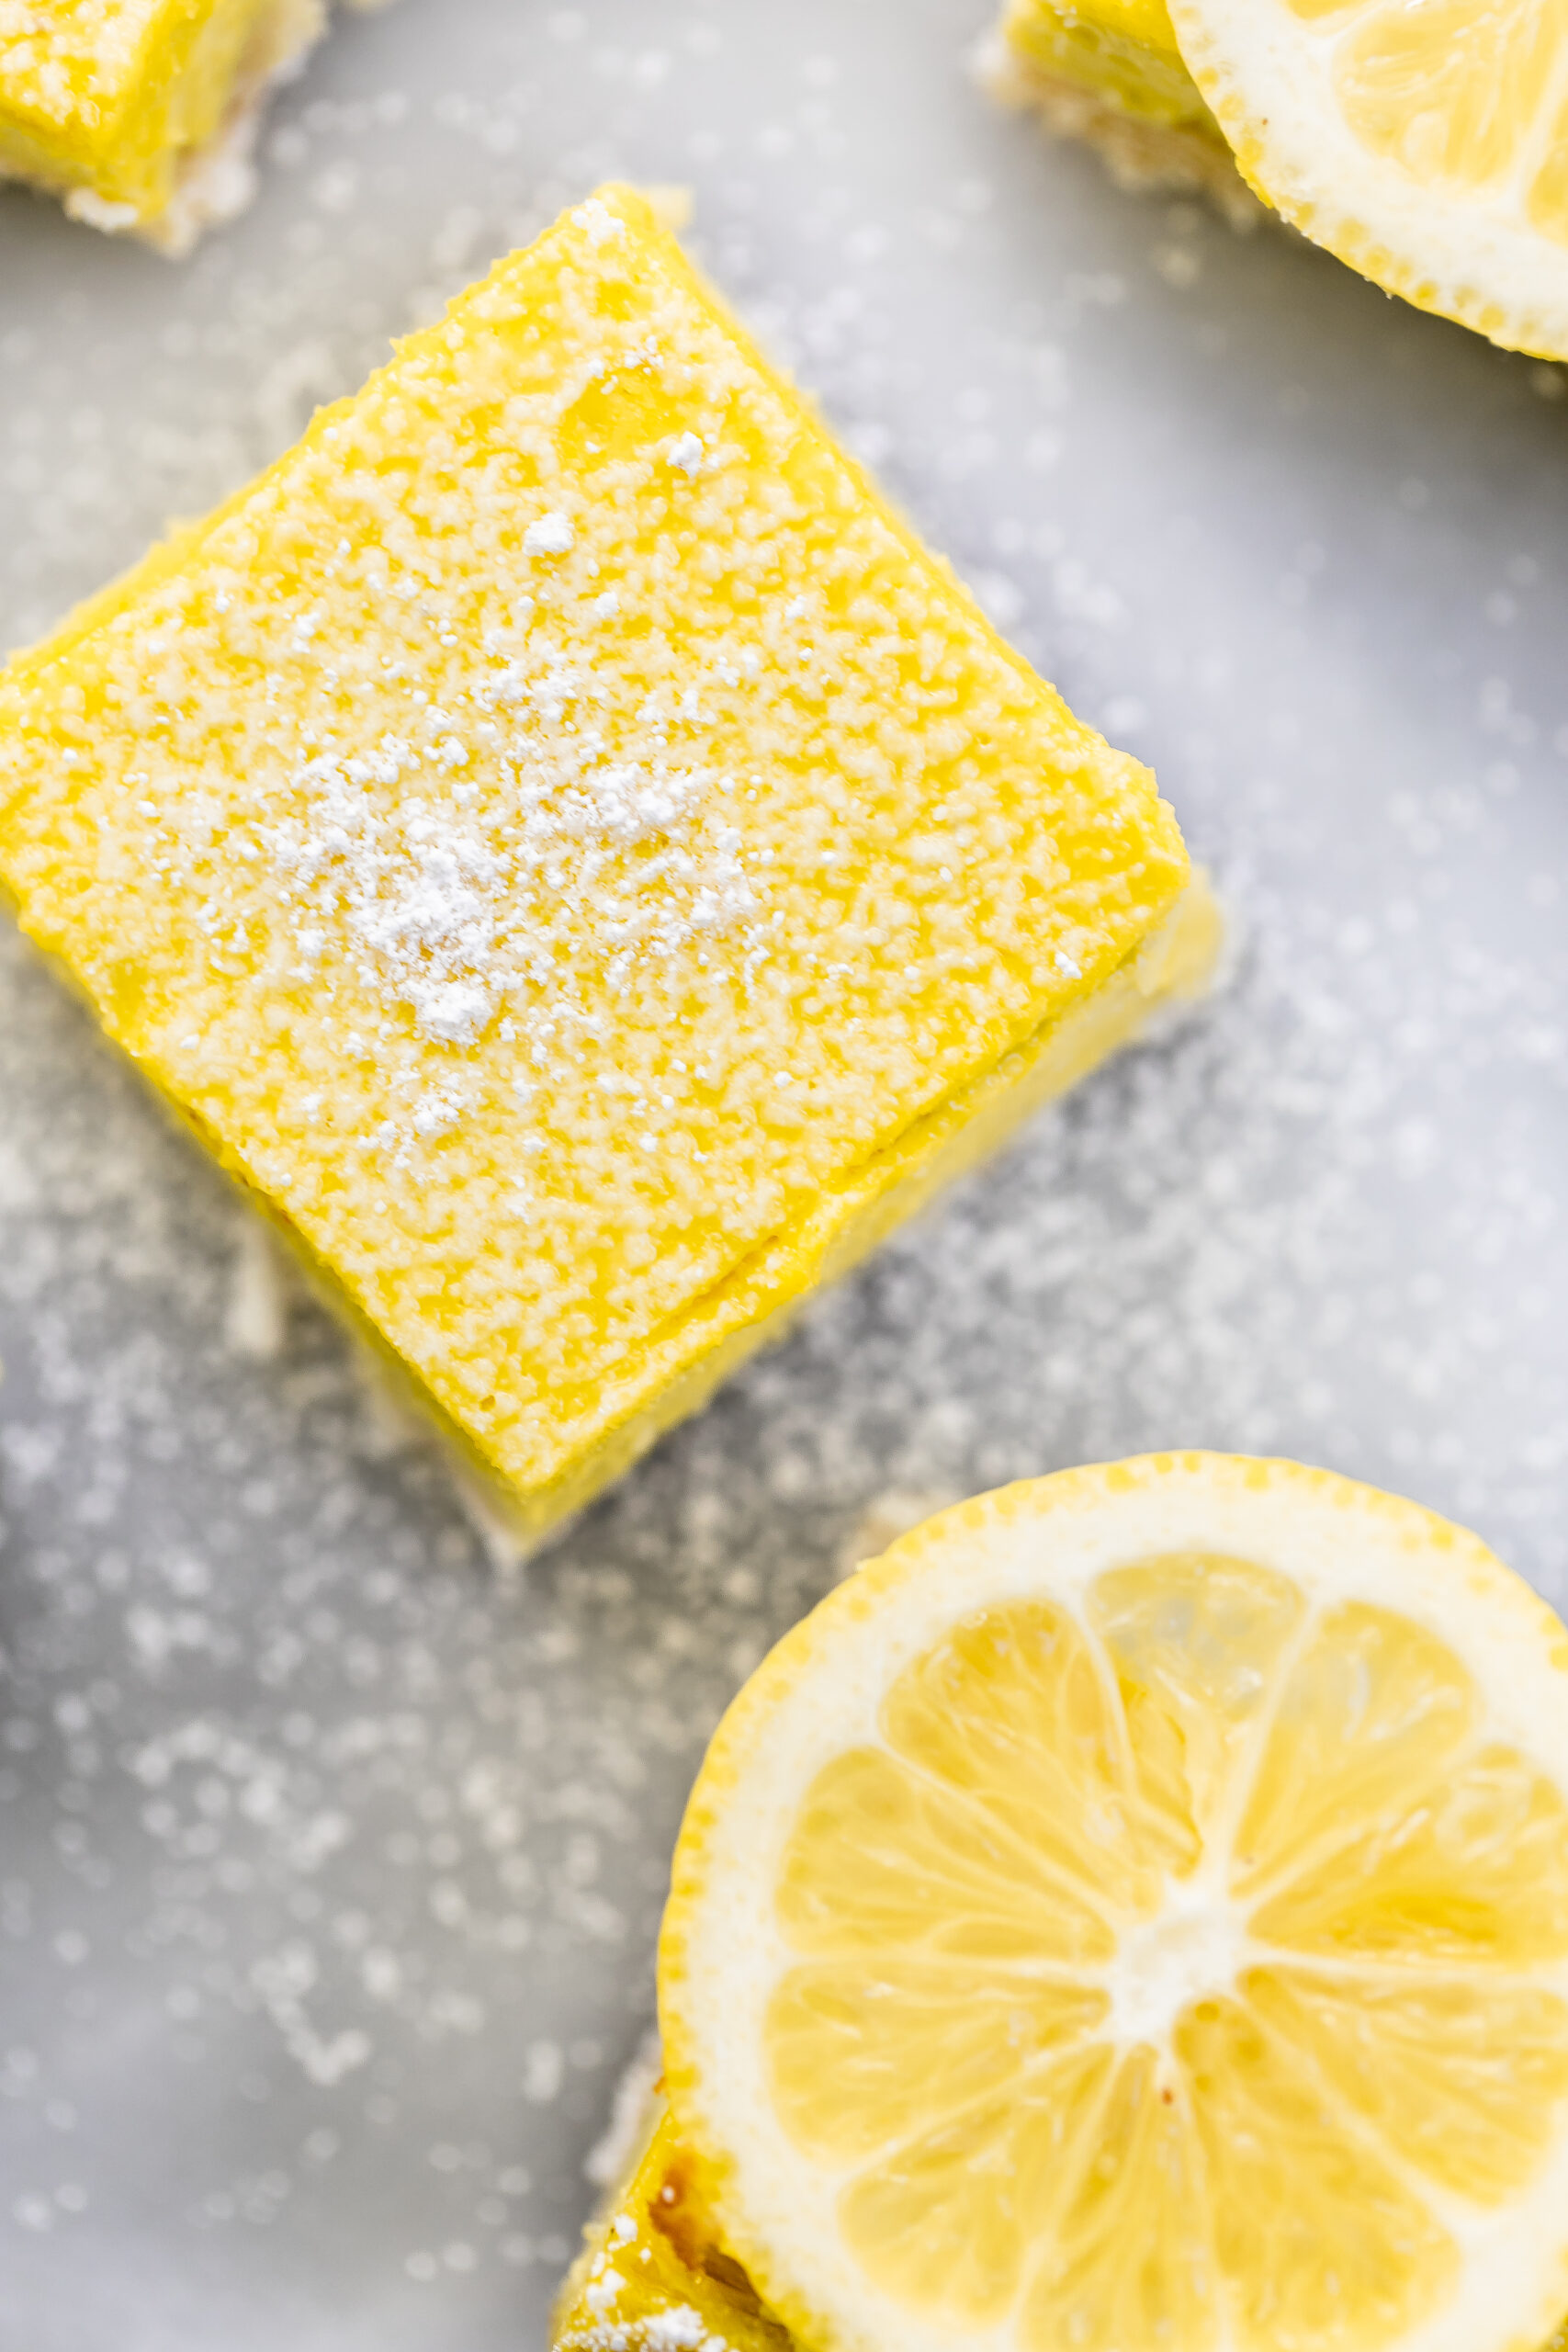 Overhead image of one bar with a lemon slice on top.